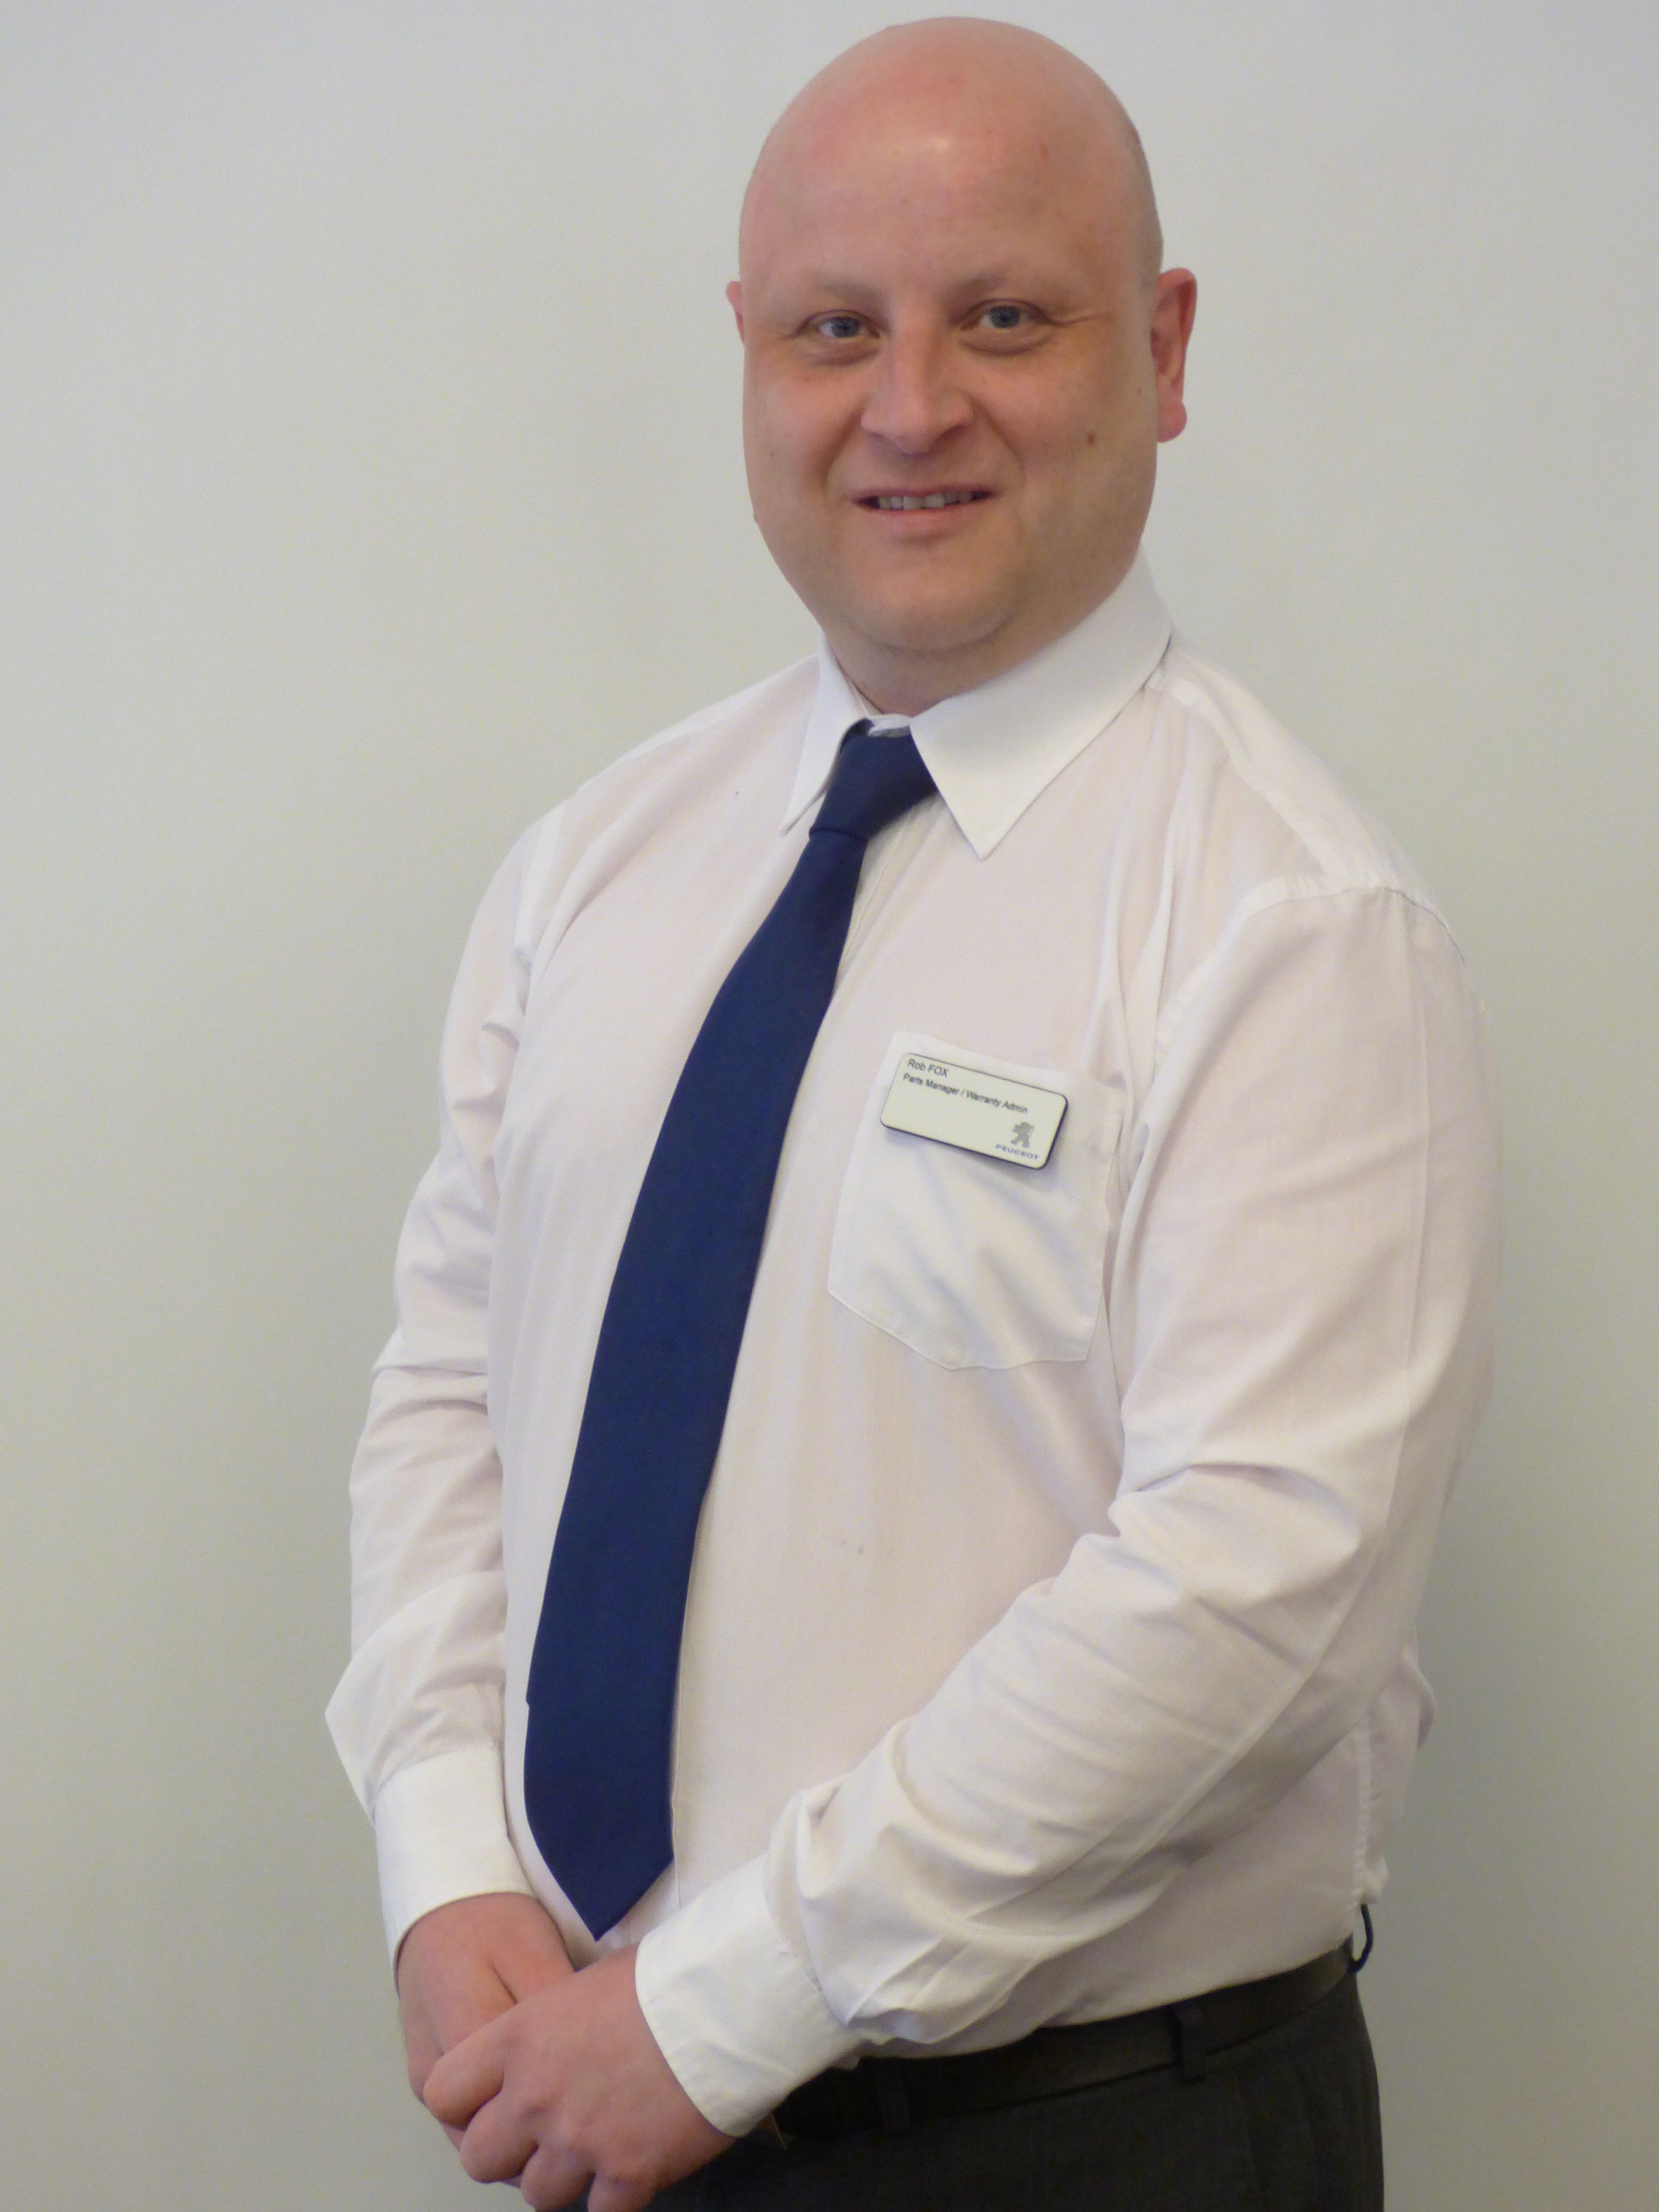 Rob Fox Our new Parts Manager